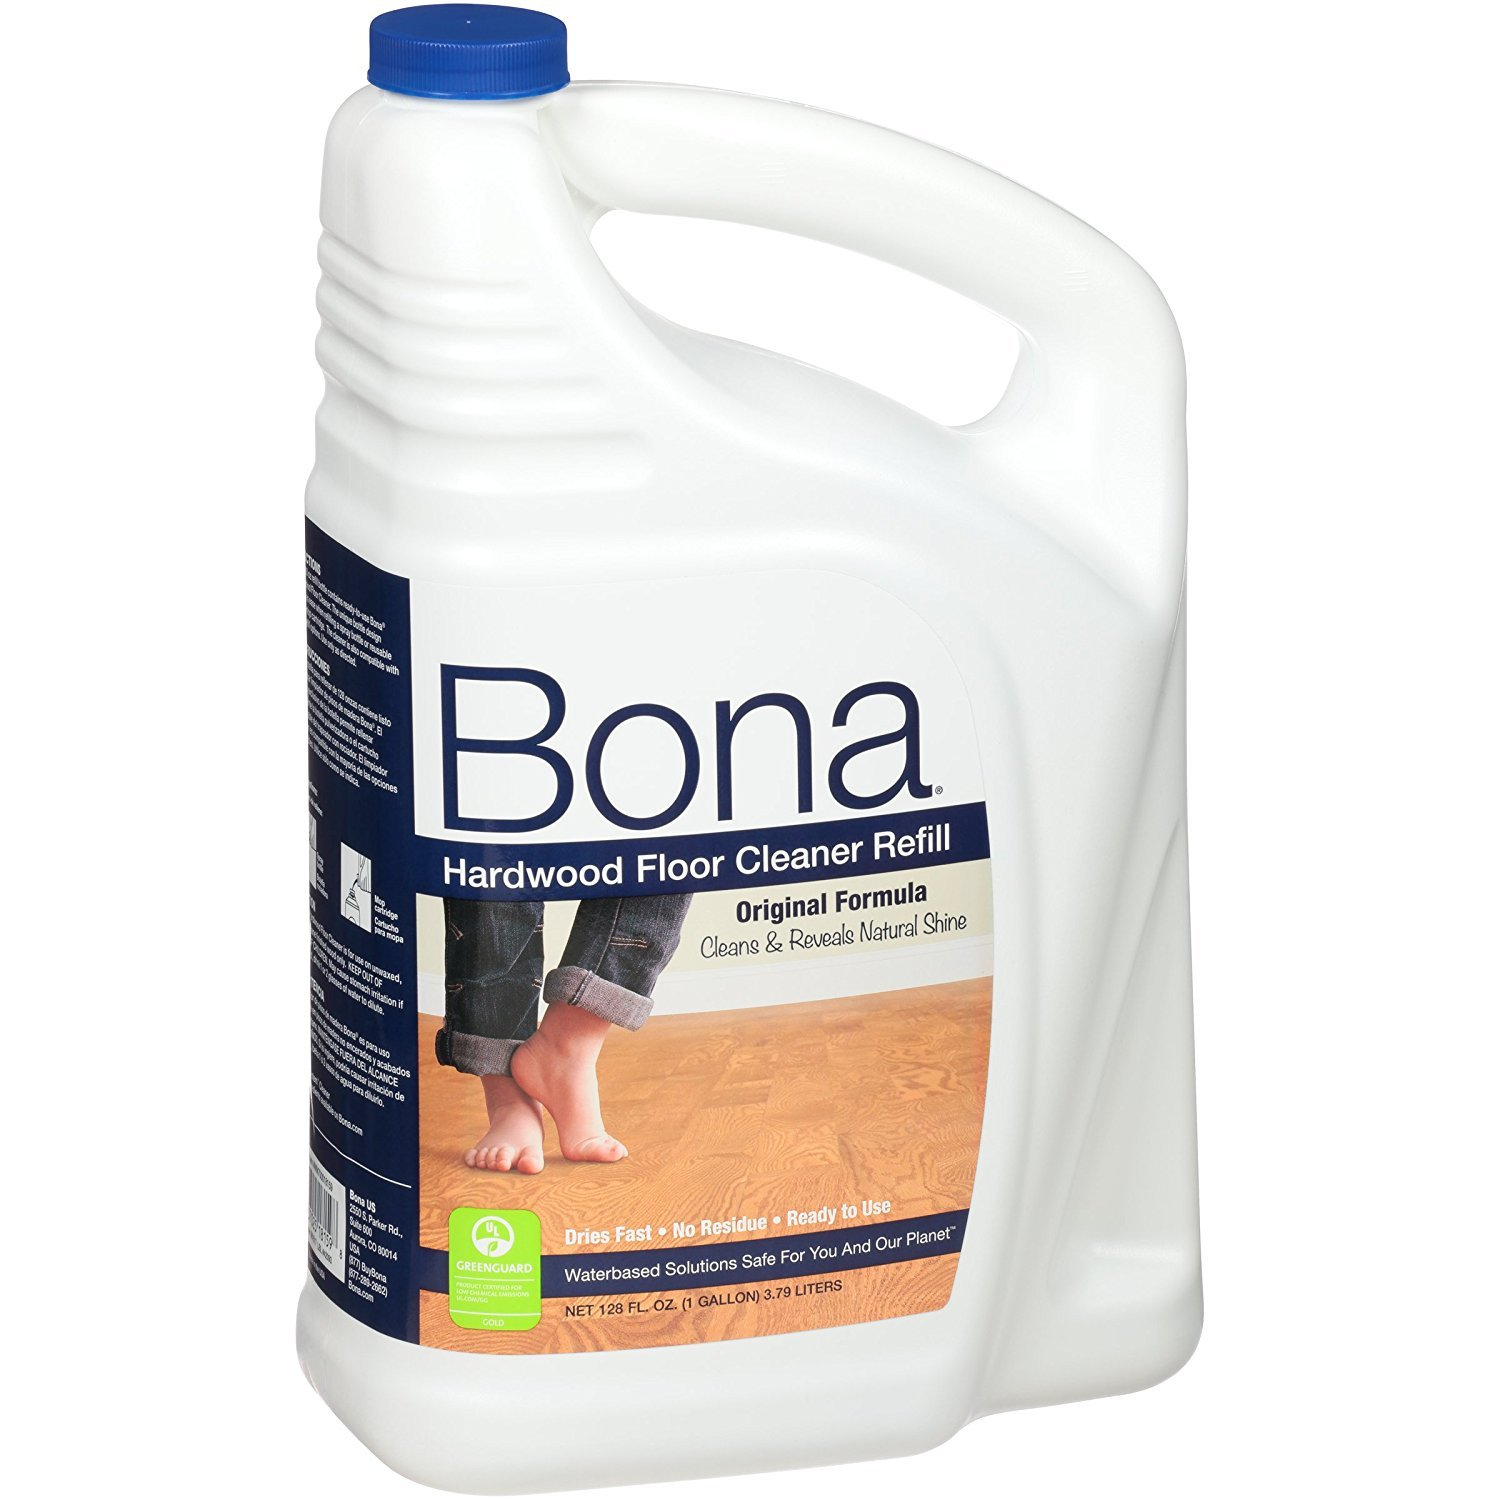 Bona Hardwood Floor Cleaner Refill 128 oz with Three Microfiber Cleaning Cloth